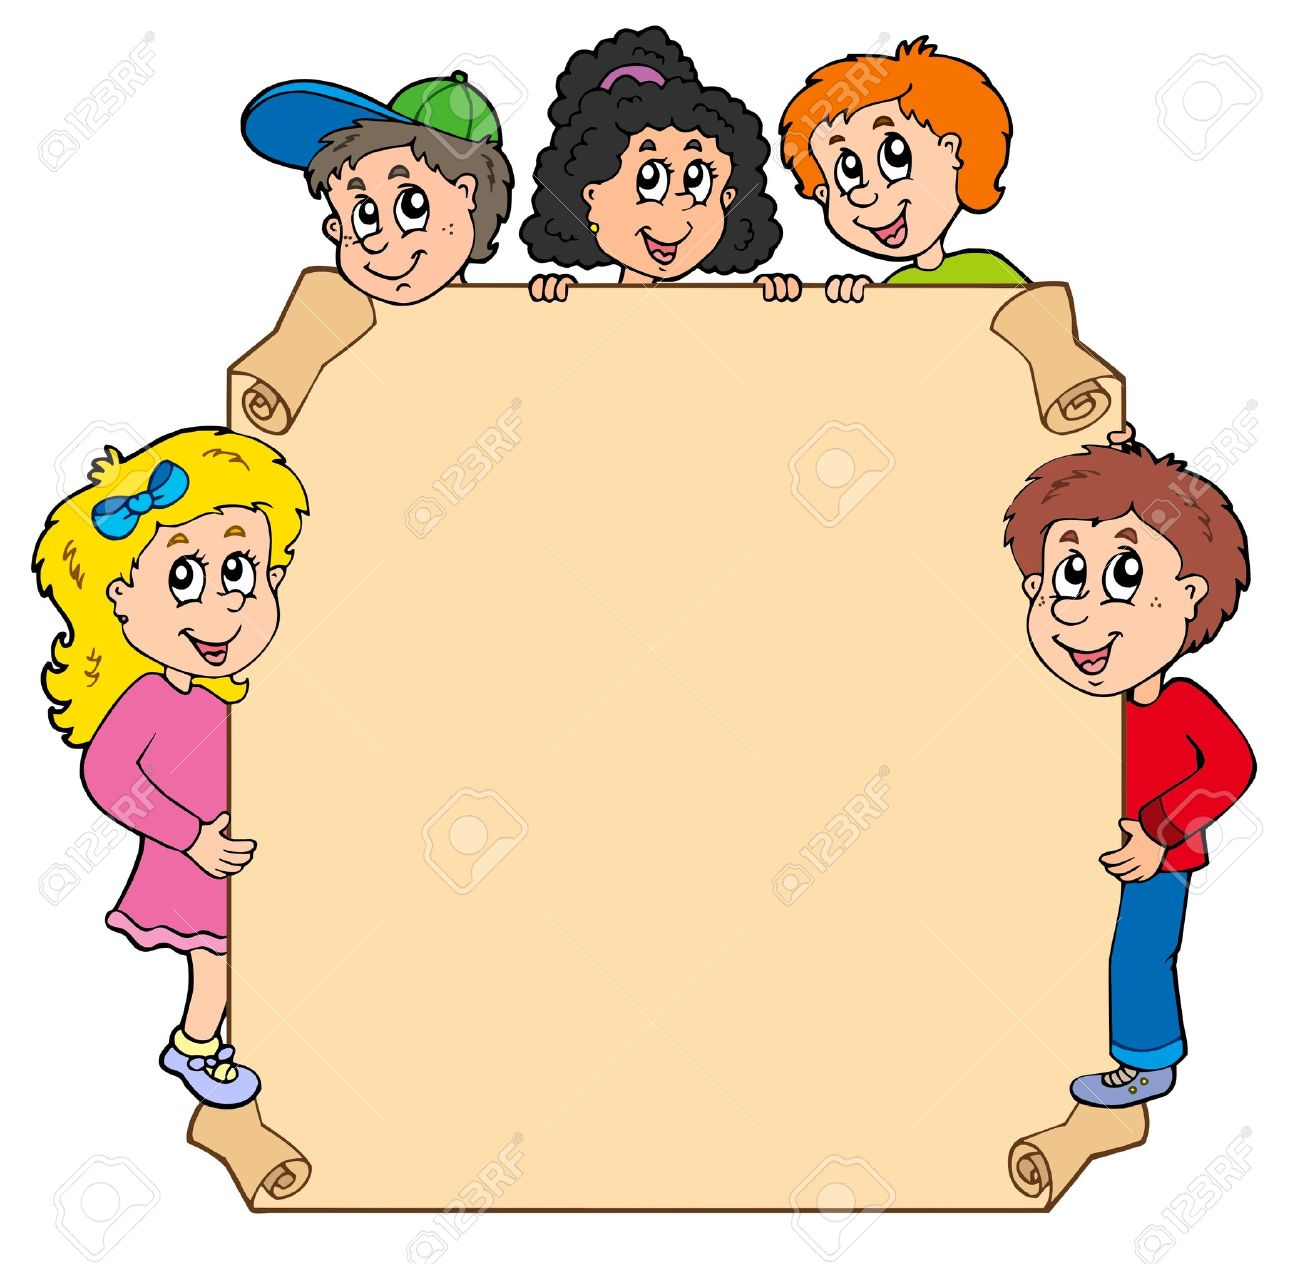 Kids cliparts jpg royalty free library Kids presenting clipart - ClipartFest jpg royalty free library